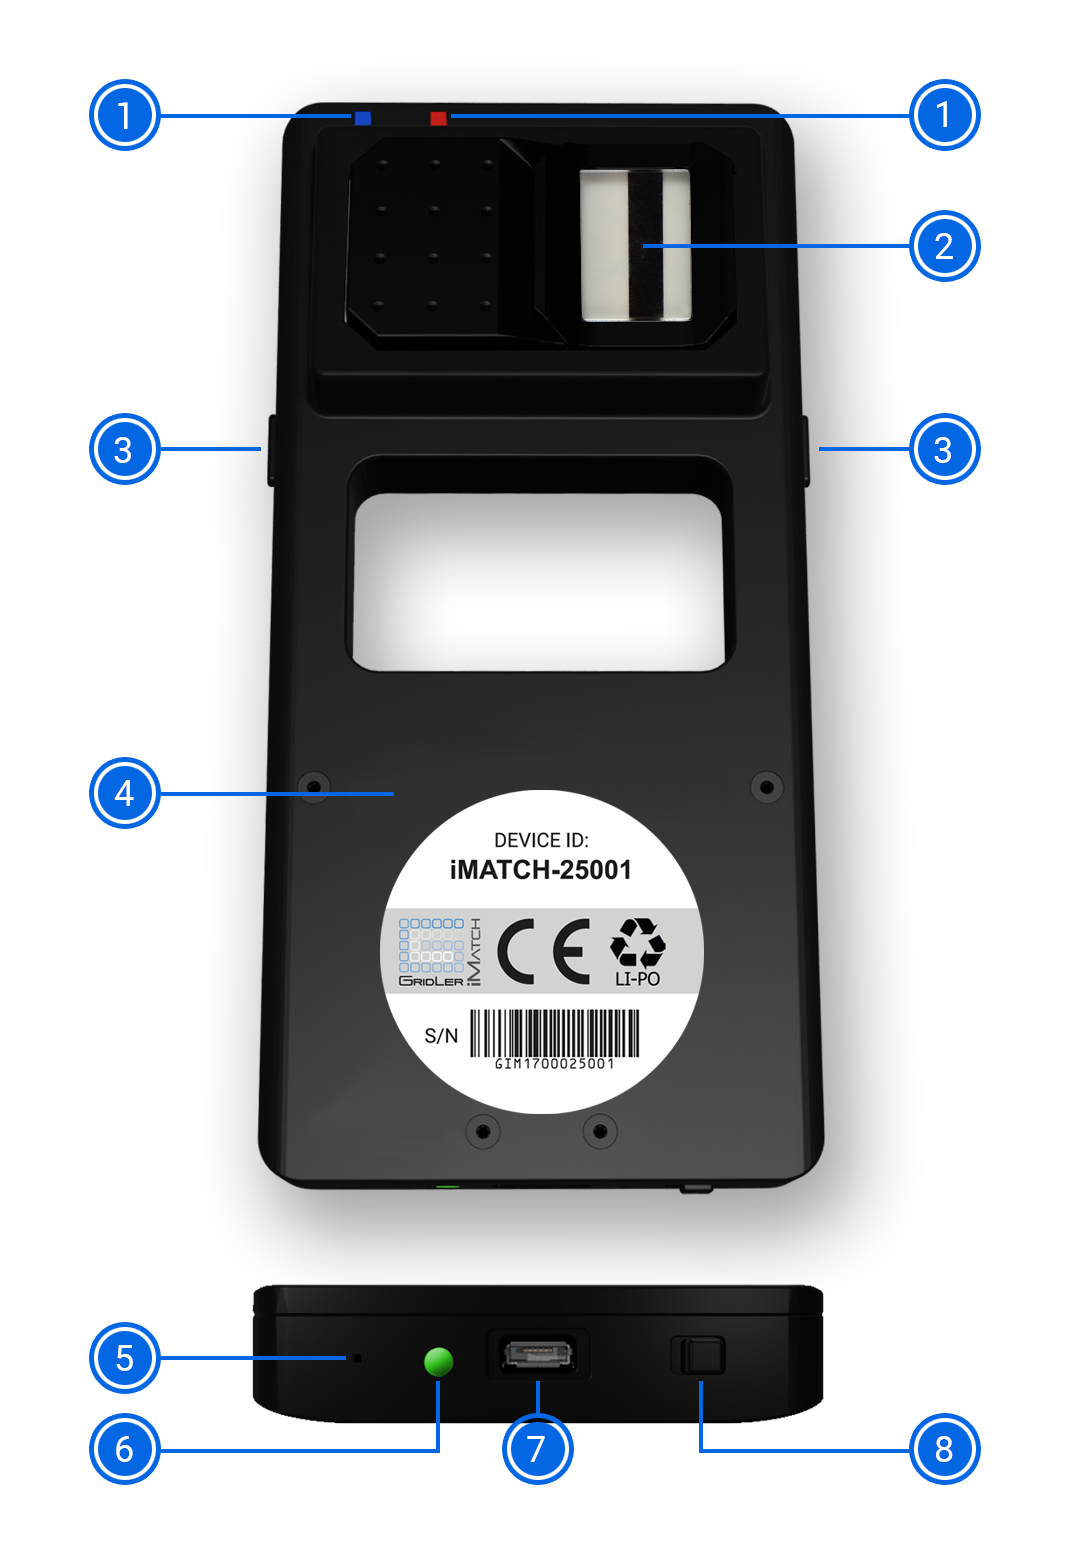 iMatch mobile identification solution - top